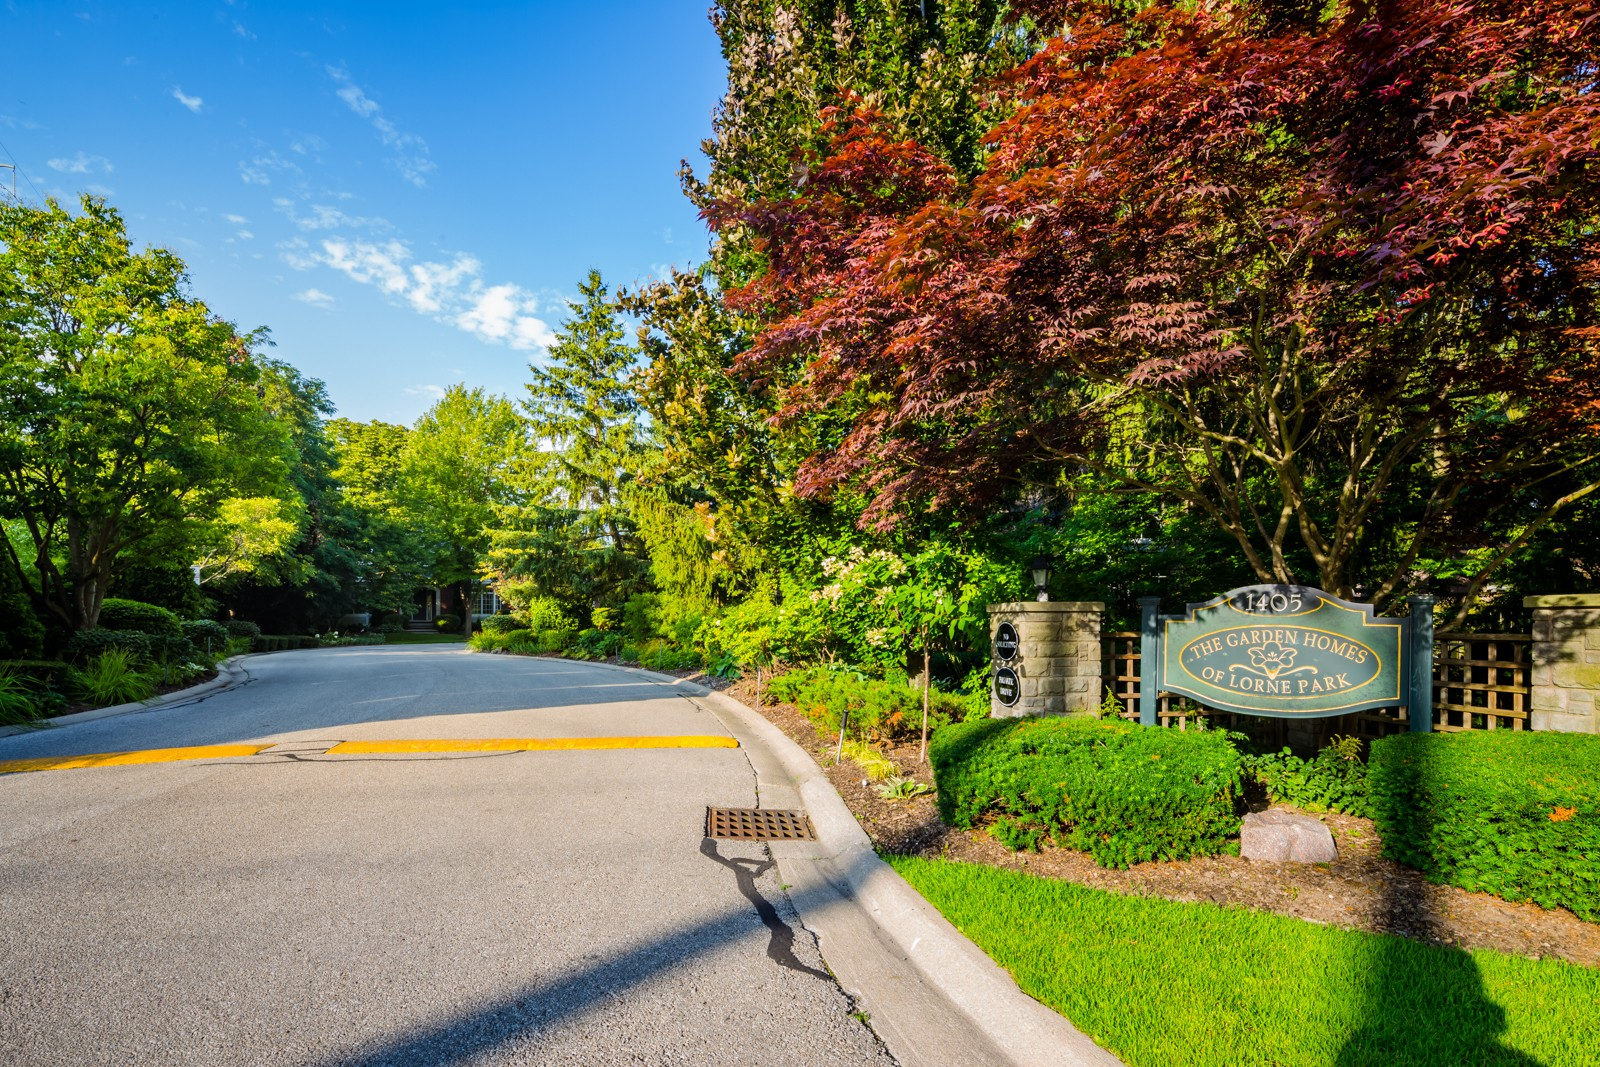 The Garden Homes of Lorne Park at 1405 Lorne Park Rd, Mississauga 0